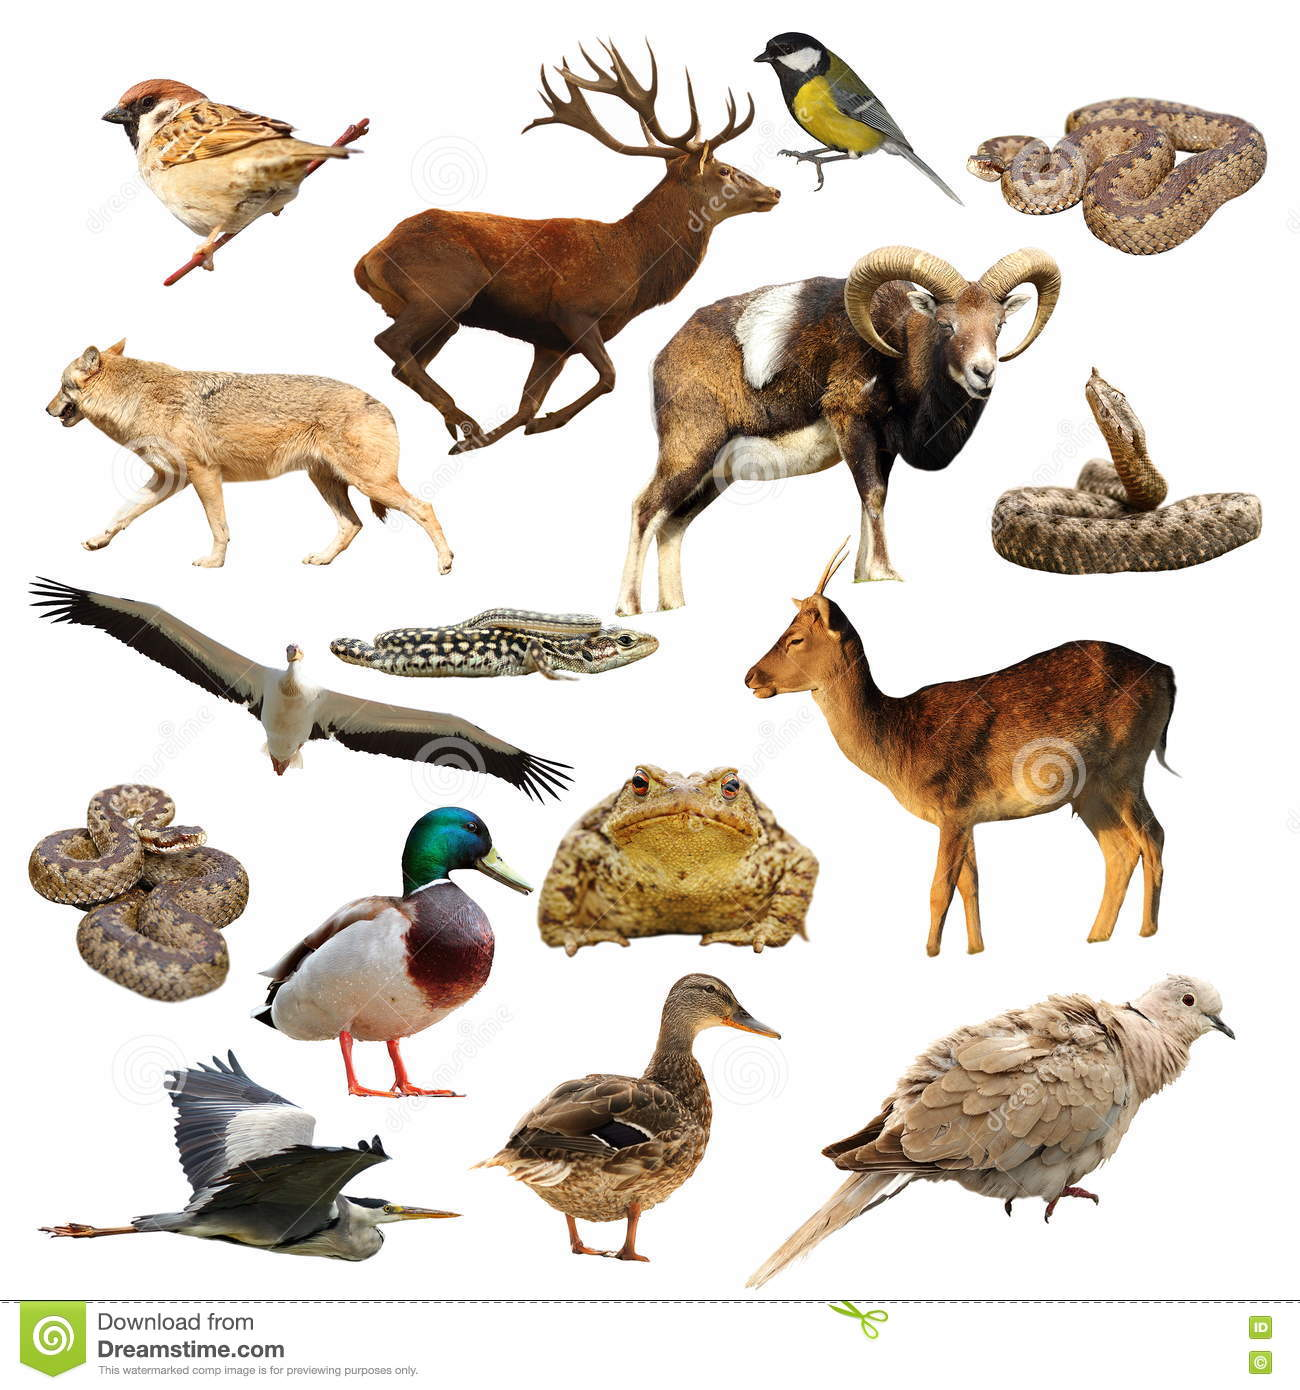 Wildlife collection over white